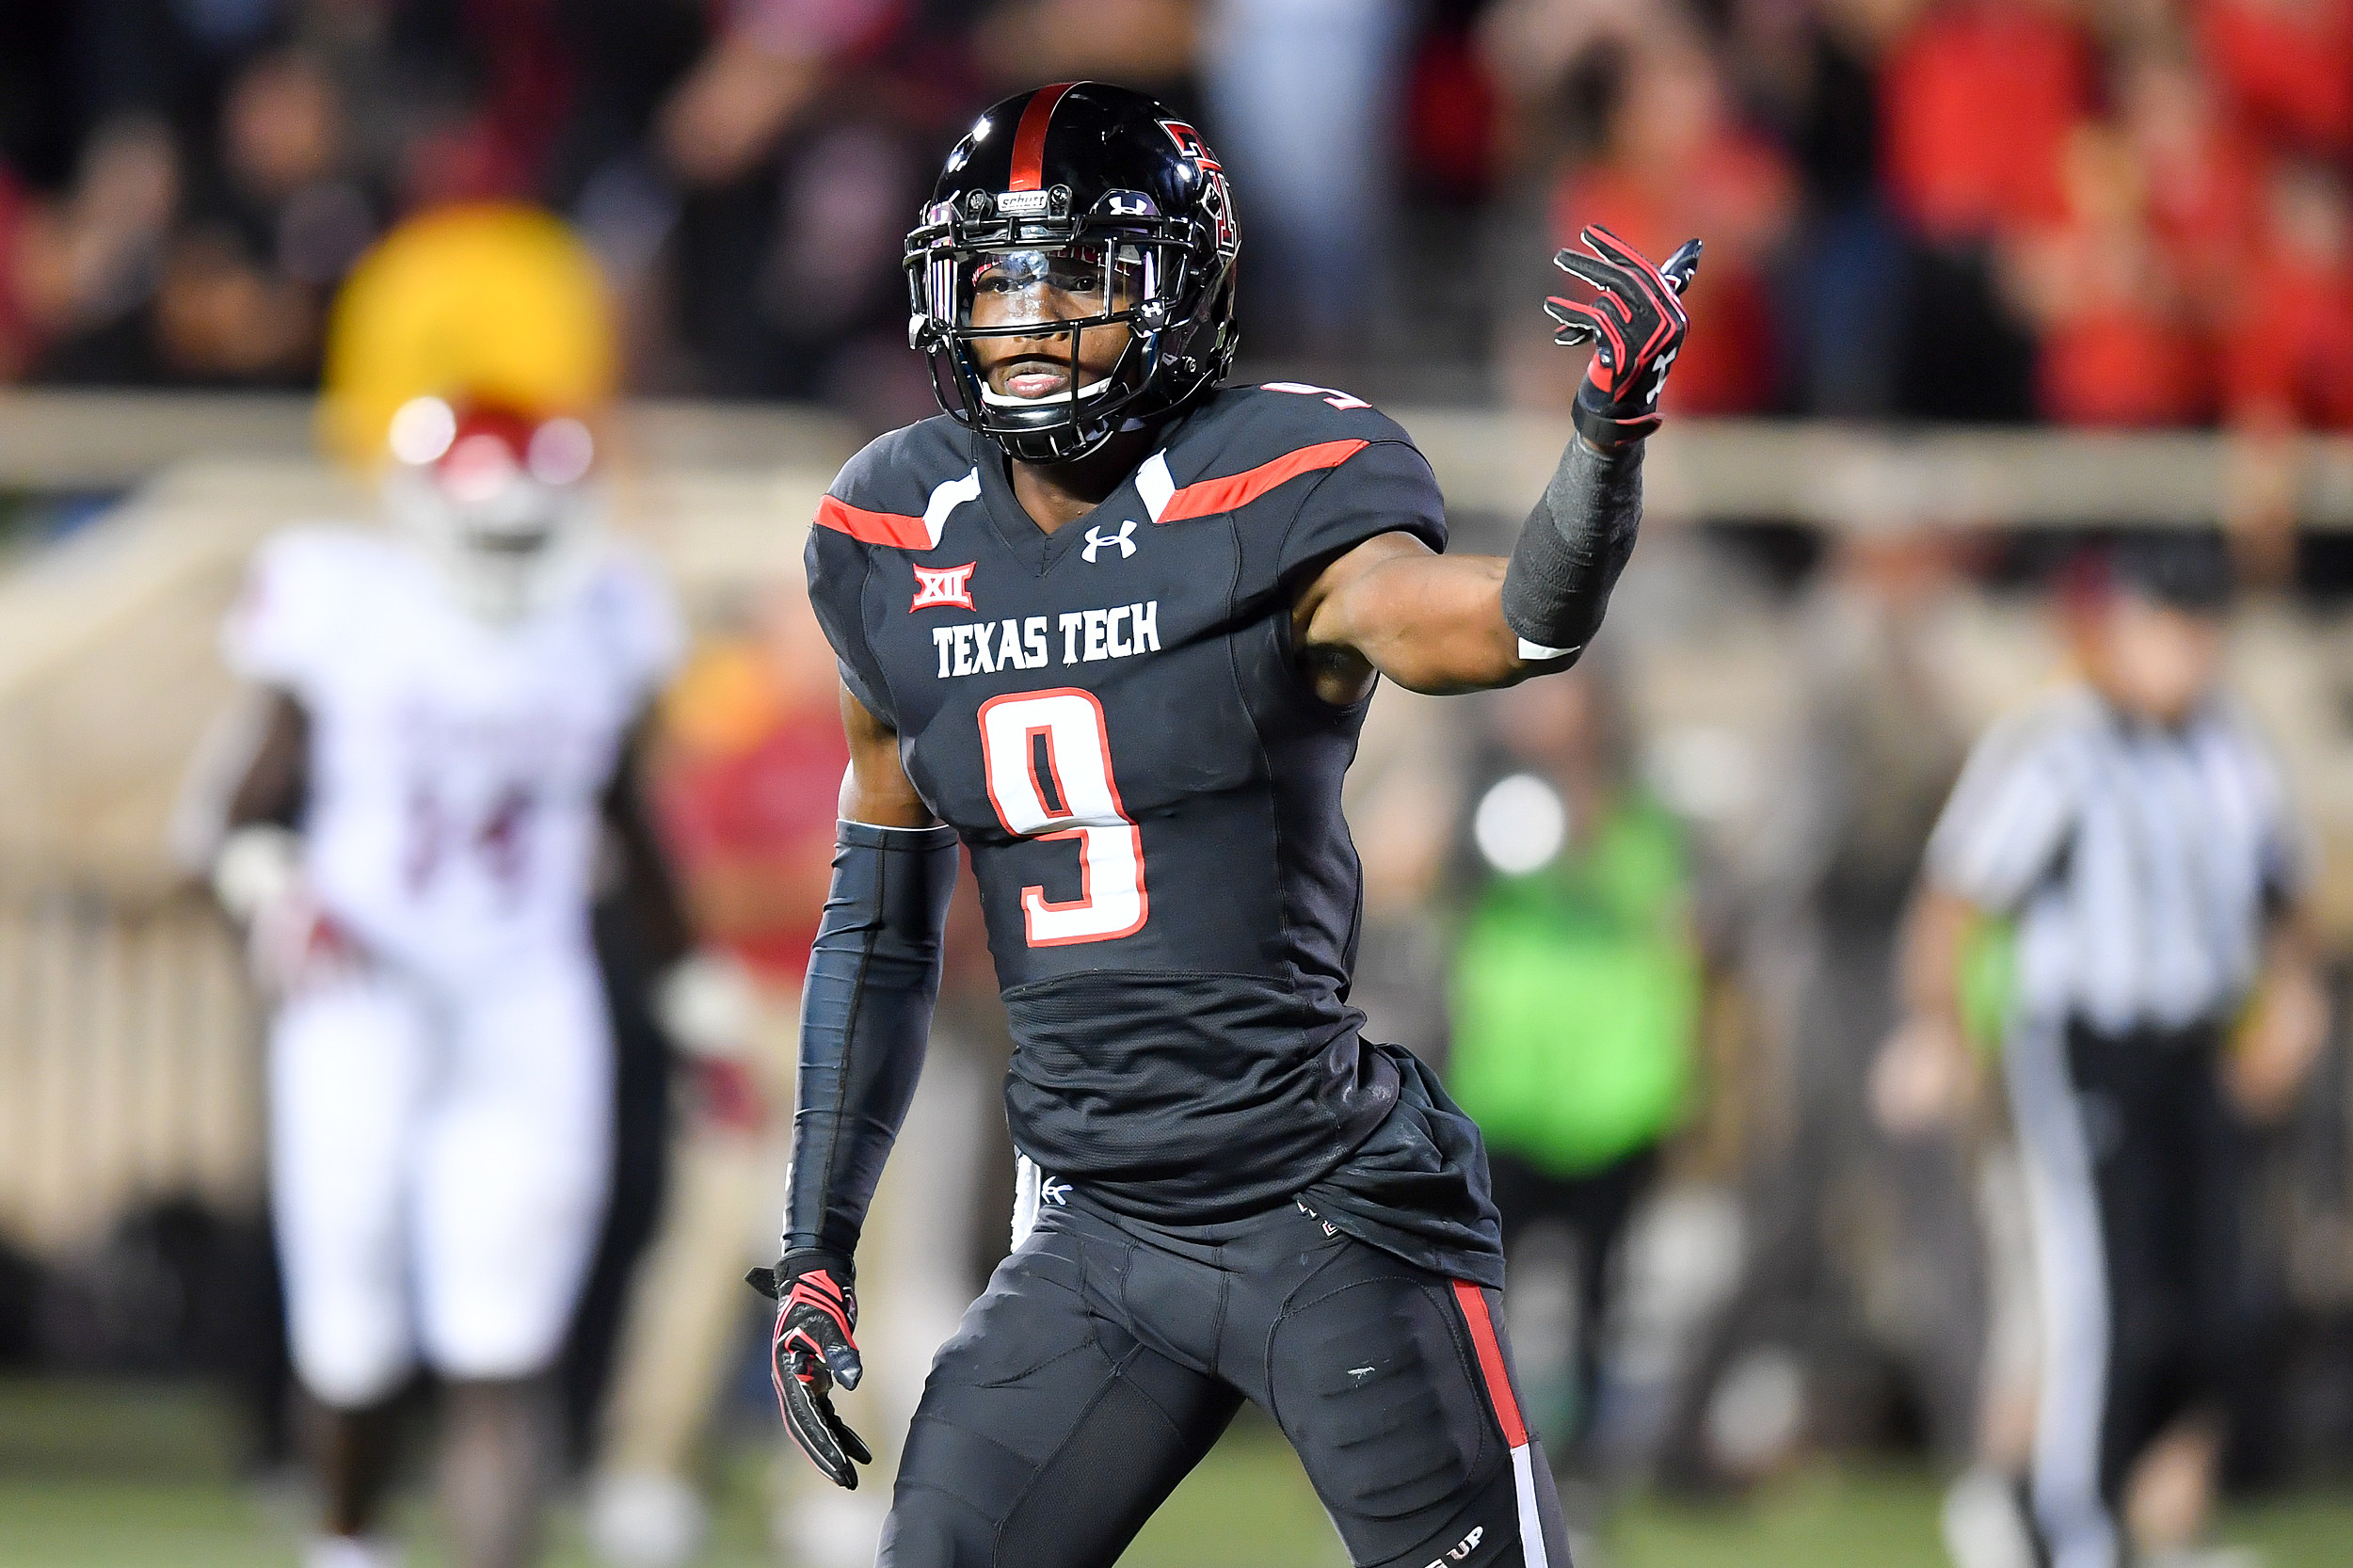 LSU Football Adding Talented Texas Tech Transfer